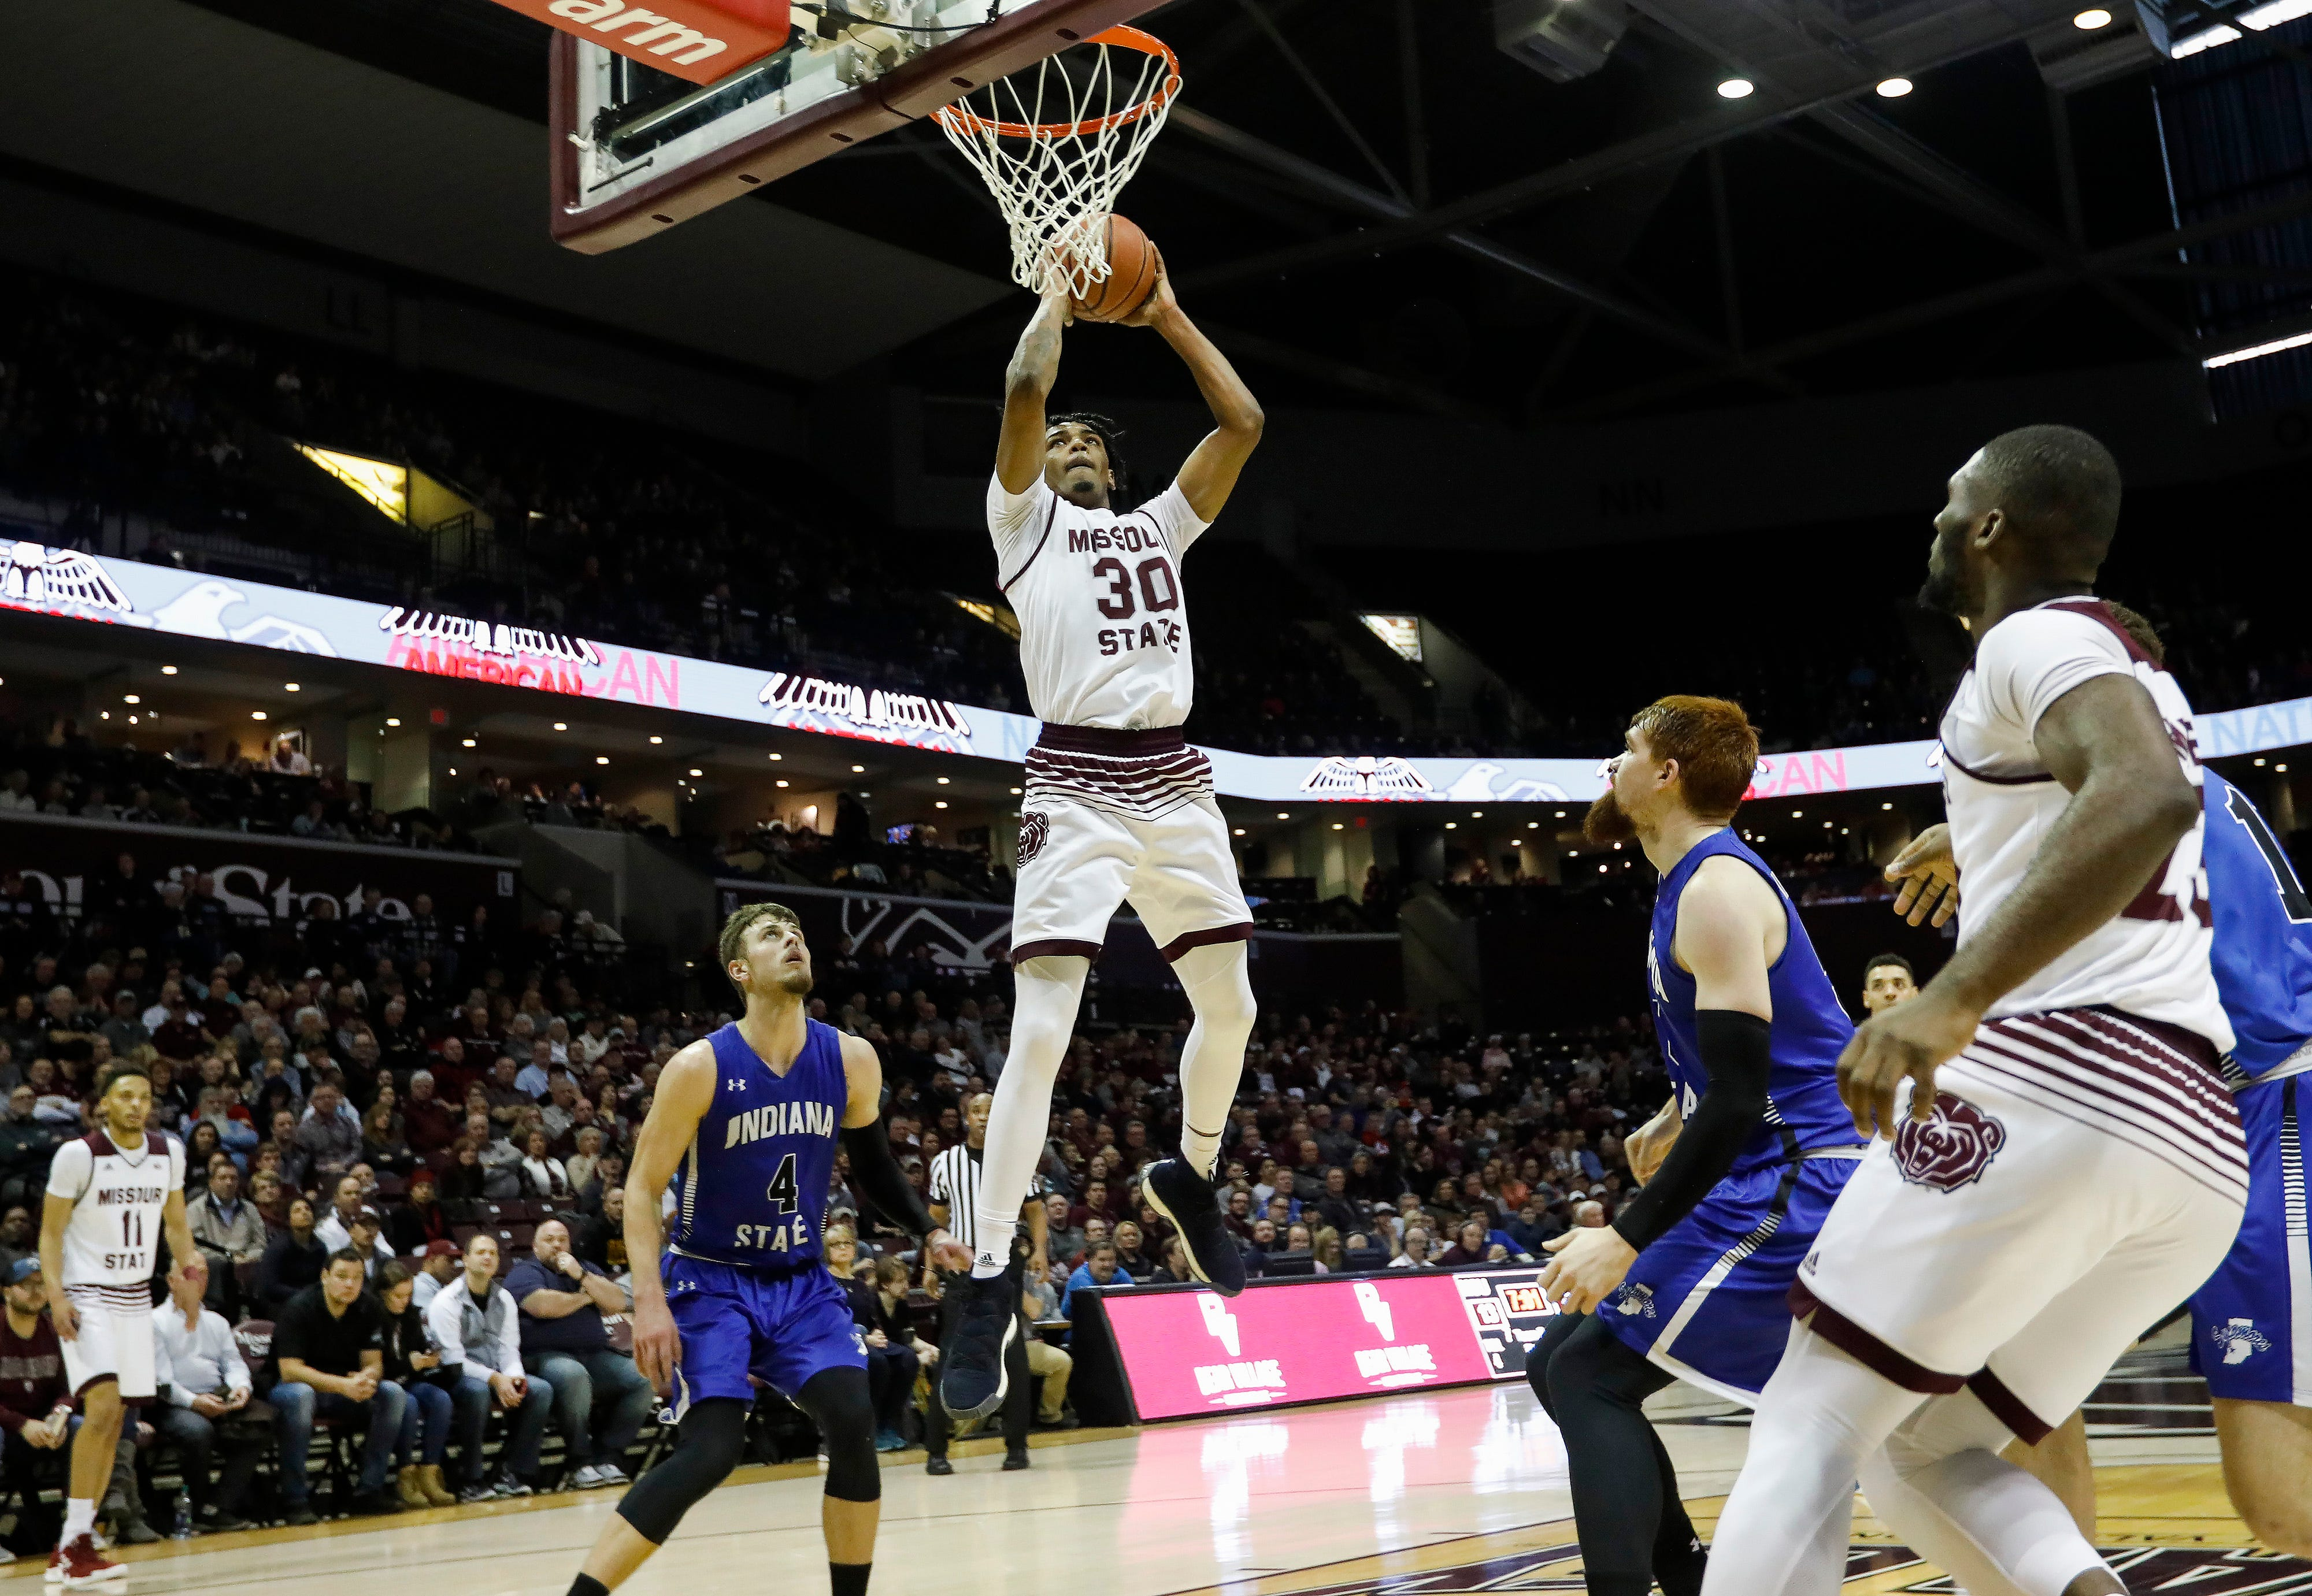 Tuilo Da Silva, of Missouri State, dunks the ball during the Bears' game against Indiana State at JQH Arena on Saturday, Feb. 23, 2019.